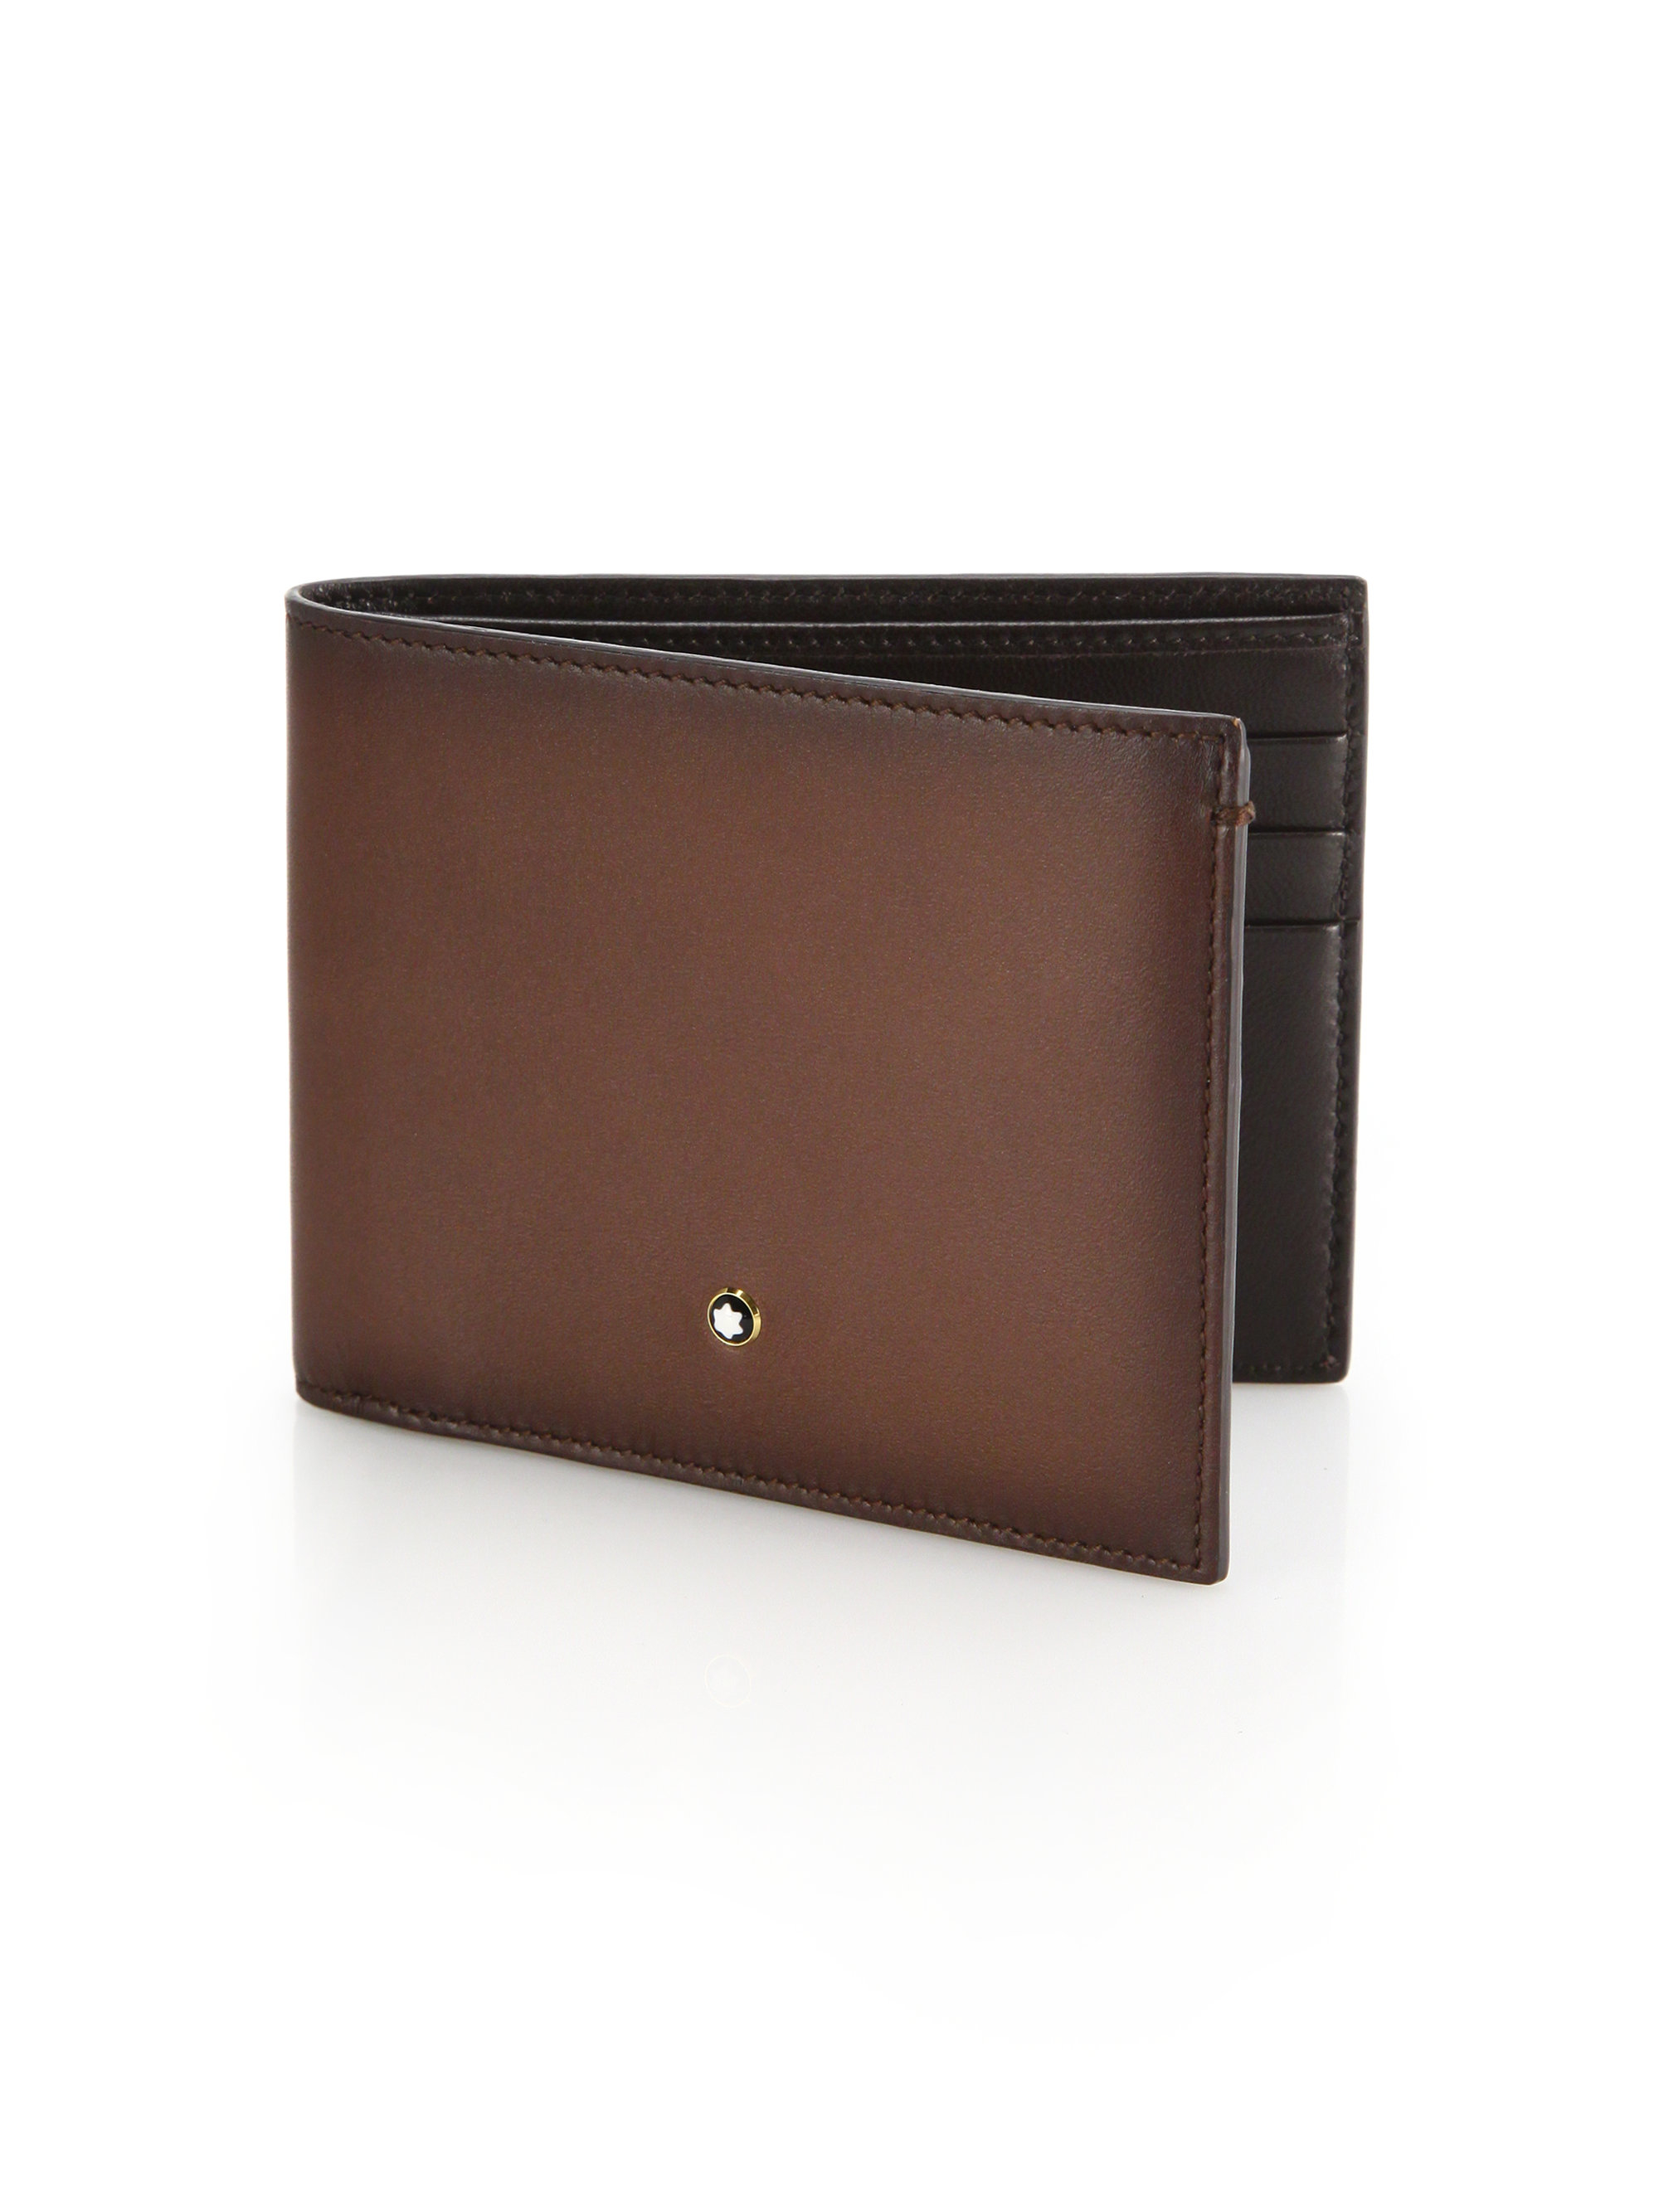 f41bbc9dd93 Lyst Montblanc Italian Leather Wallet In Brown For Men